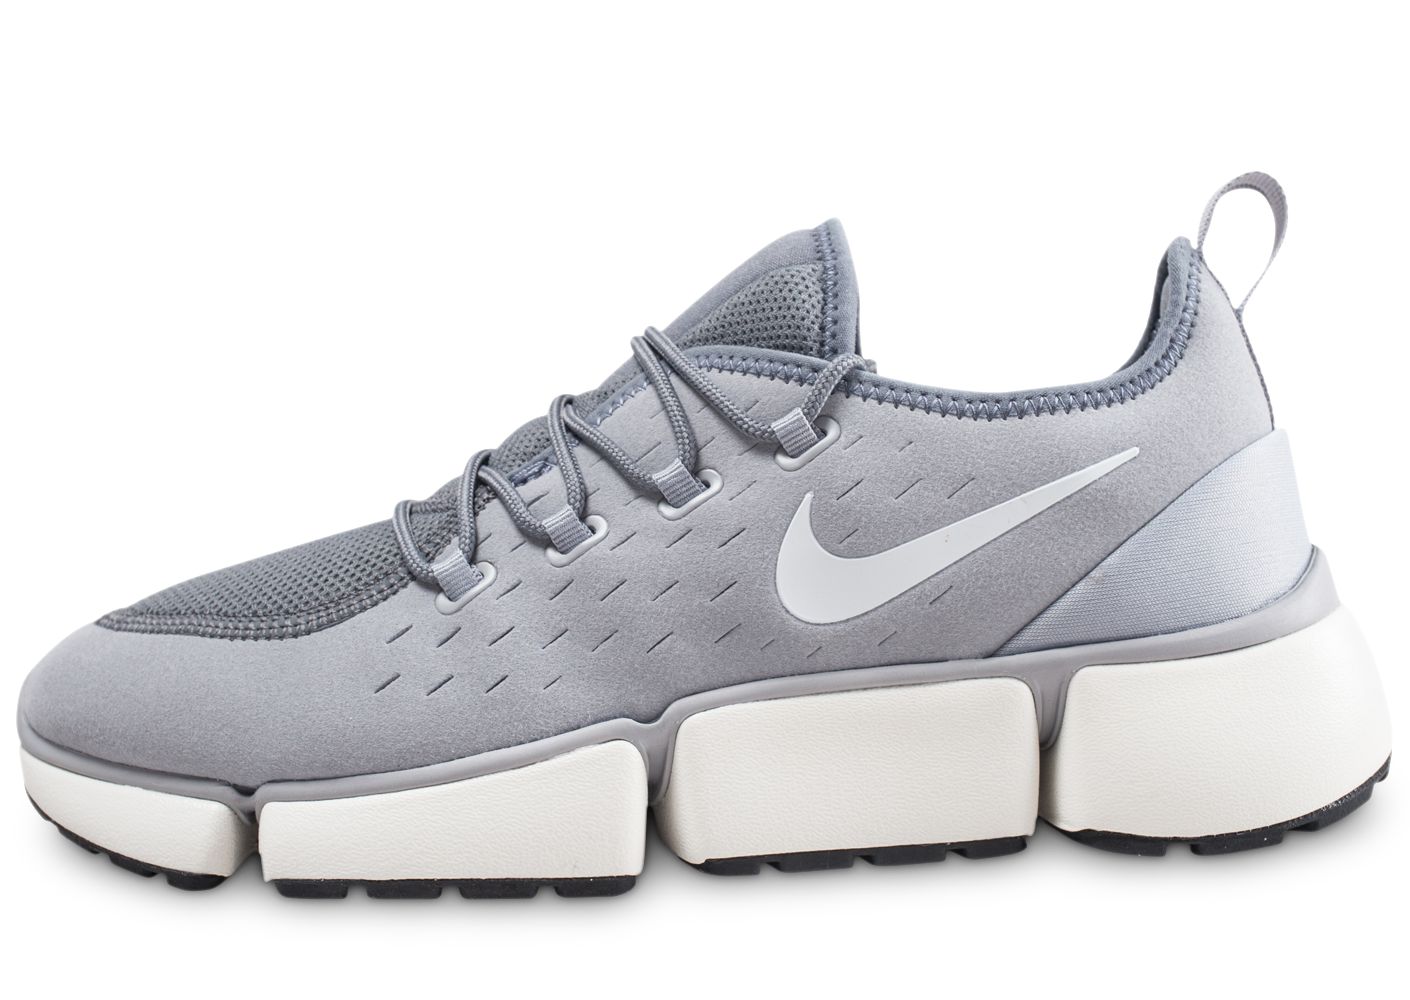 Nike Homme Pocket Fly Dm Gris Et Blanc Baskets